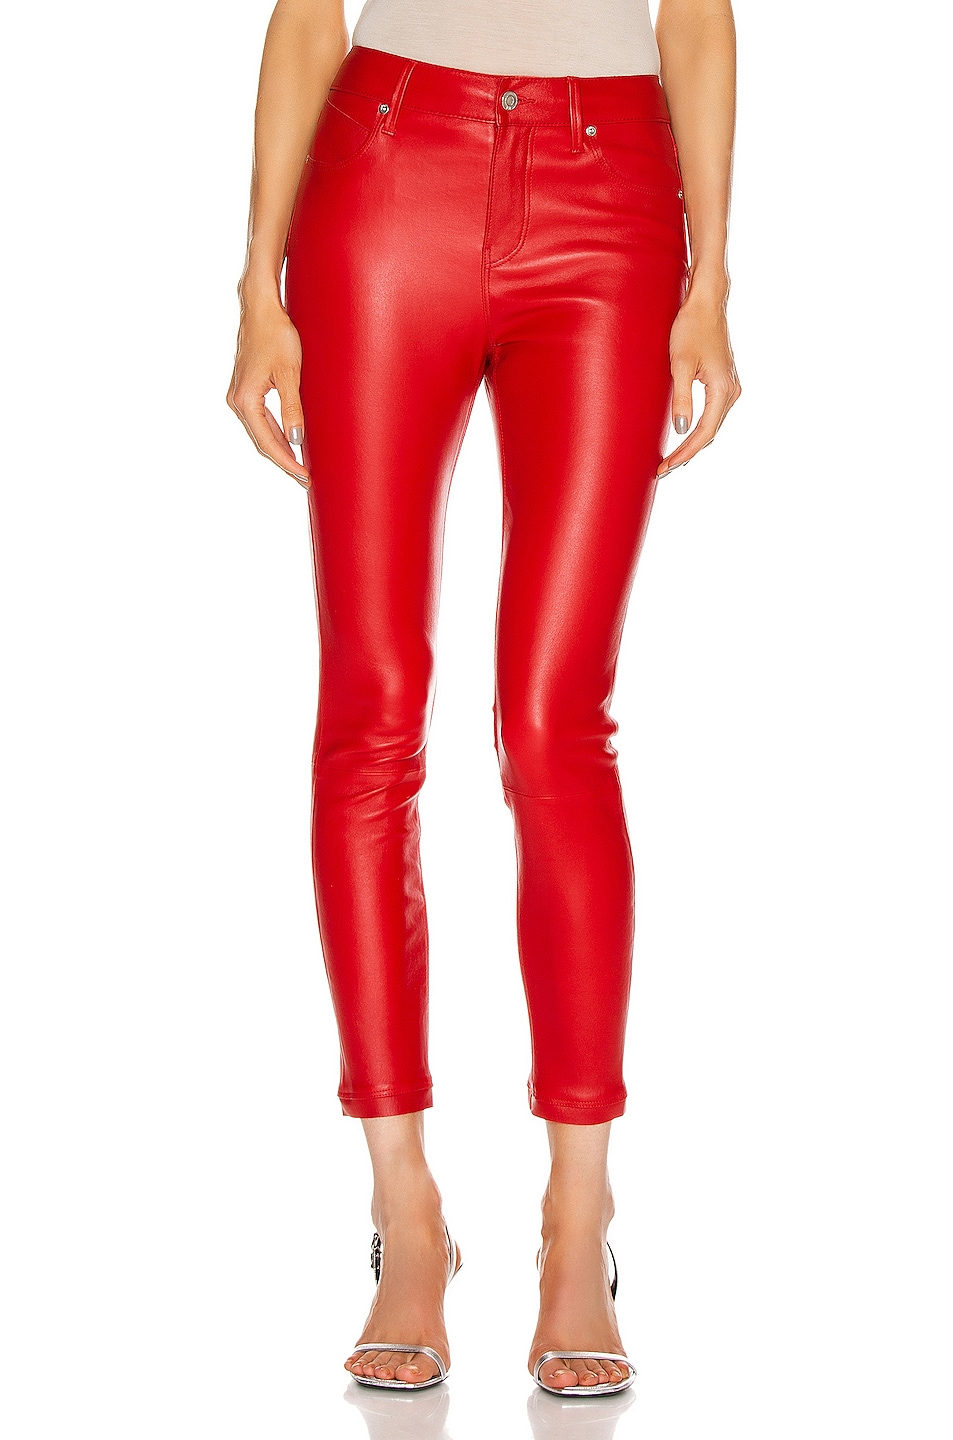 Image 1 of RtA Madrid Skinny Pant in Red Cherry